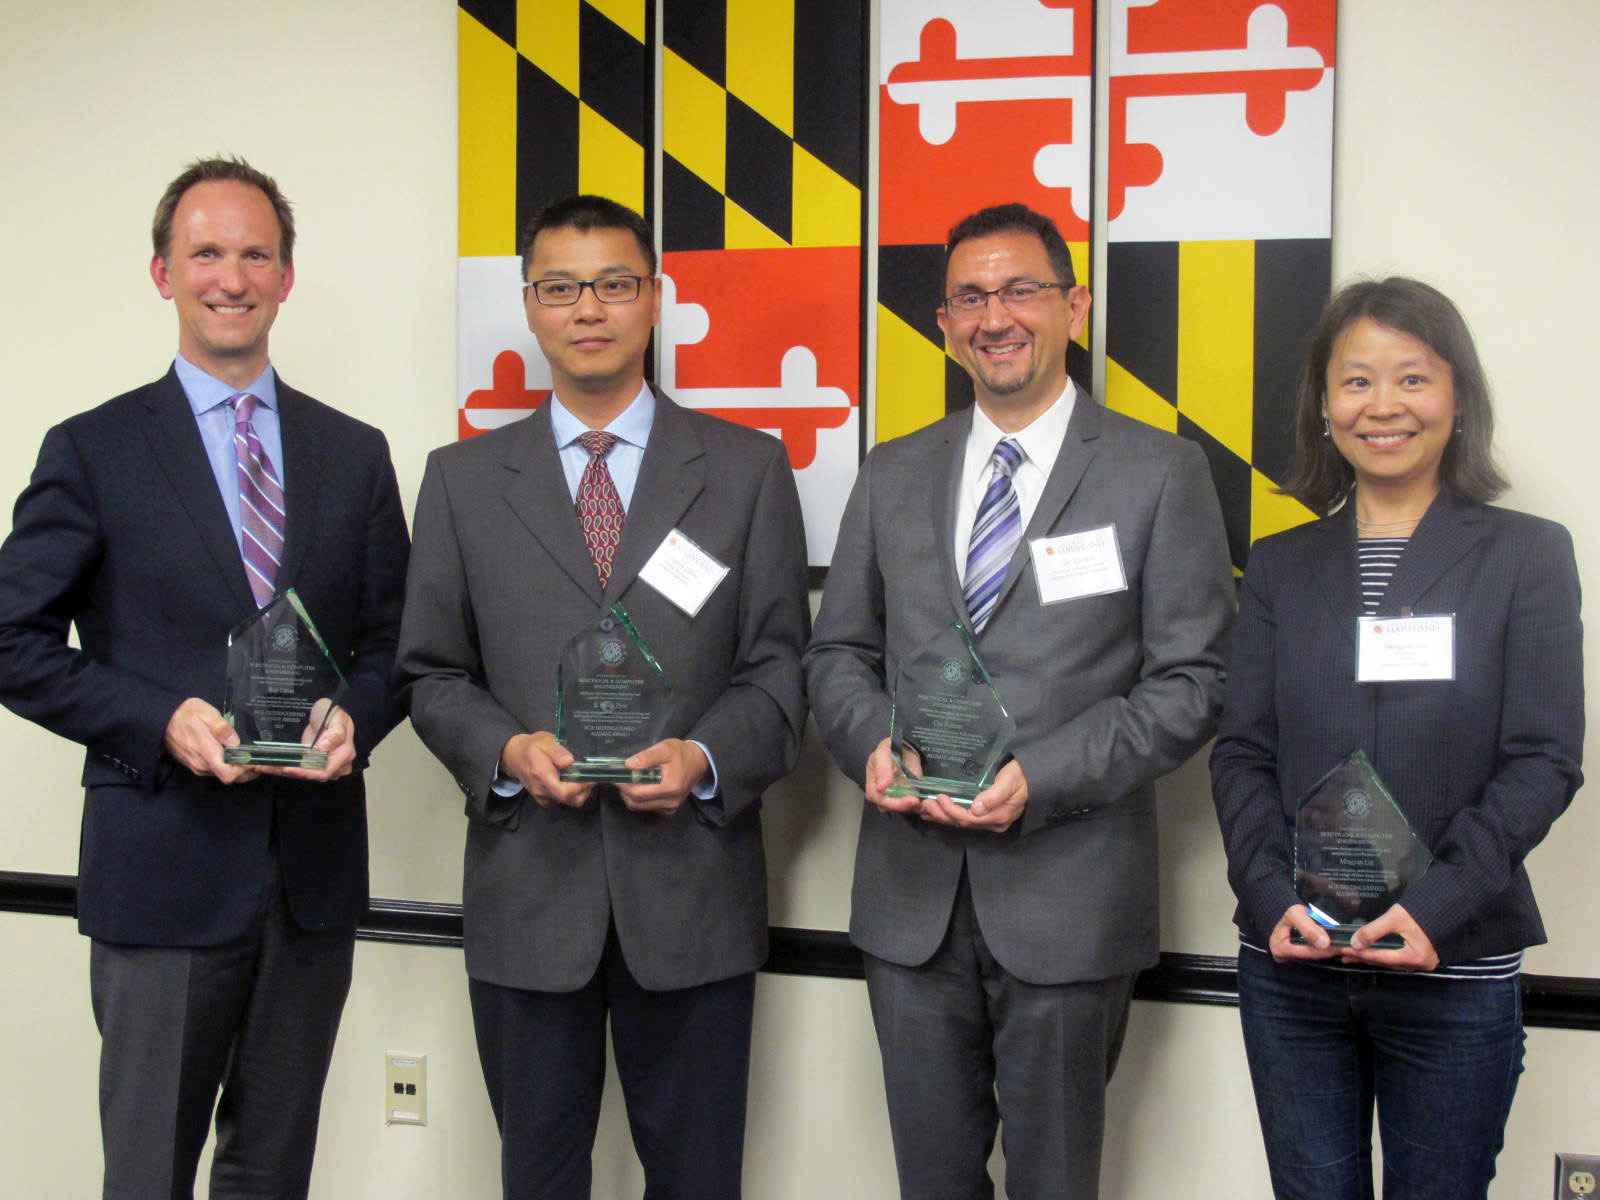 From L-R: Ray Upton, S. Kevin Zhou, Can E. Korman, and Mingyan Liu